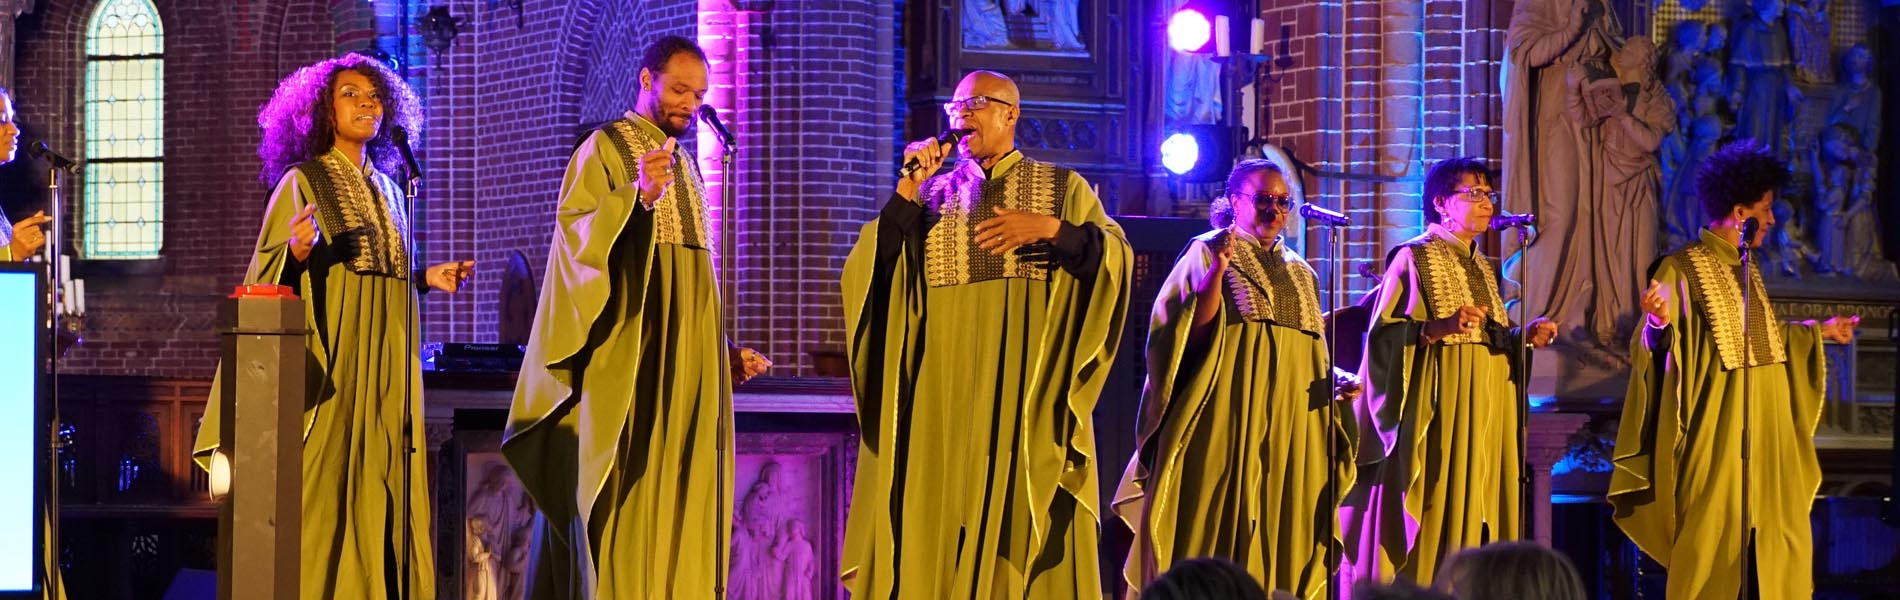 gospelkoor amazing vocals in kerk